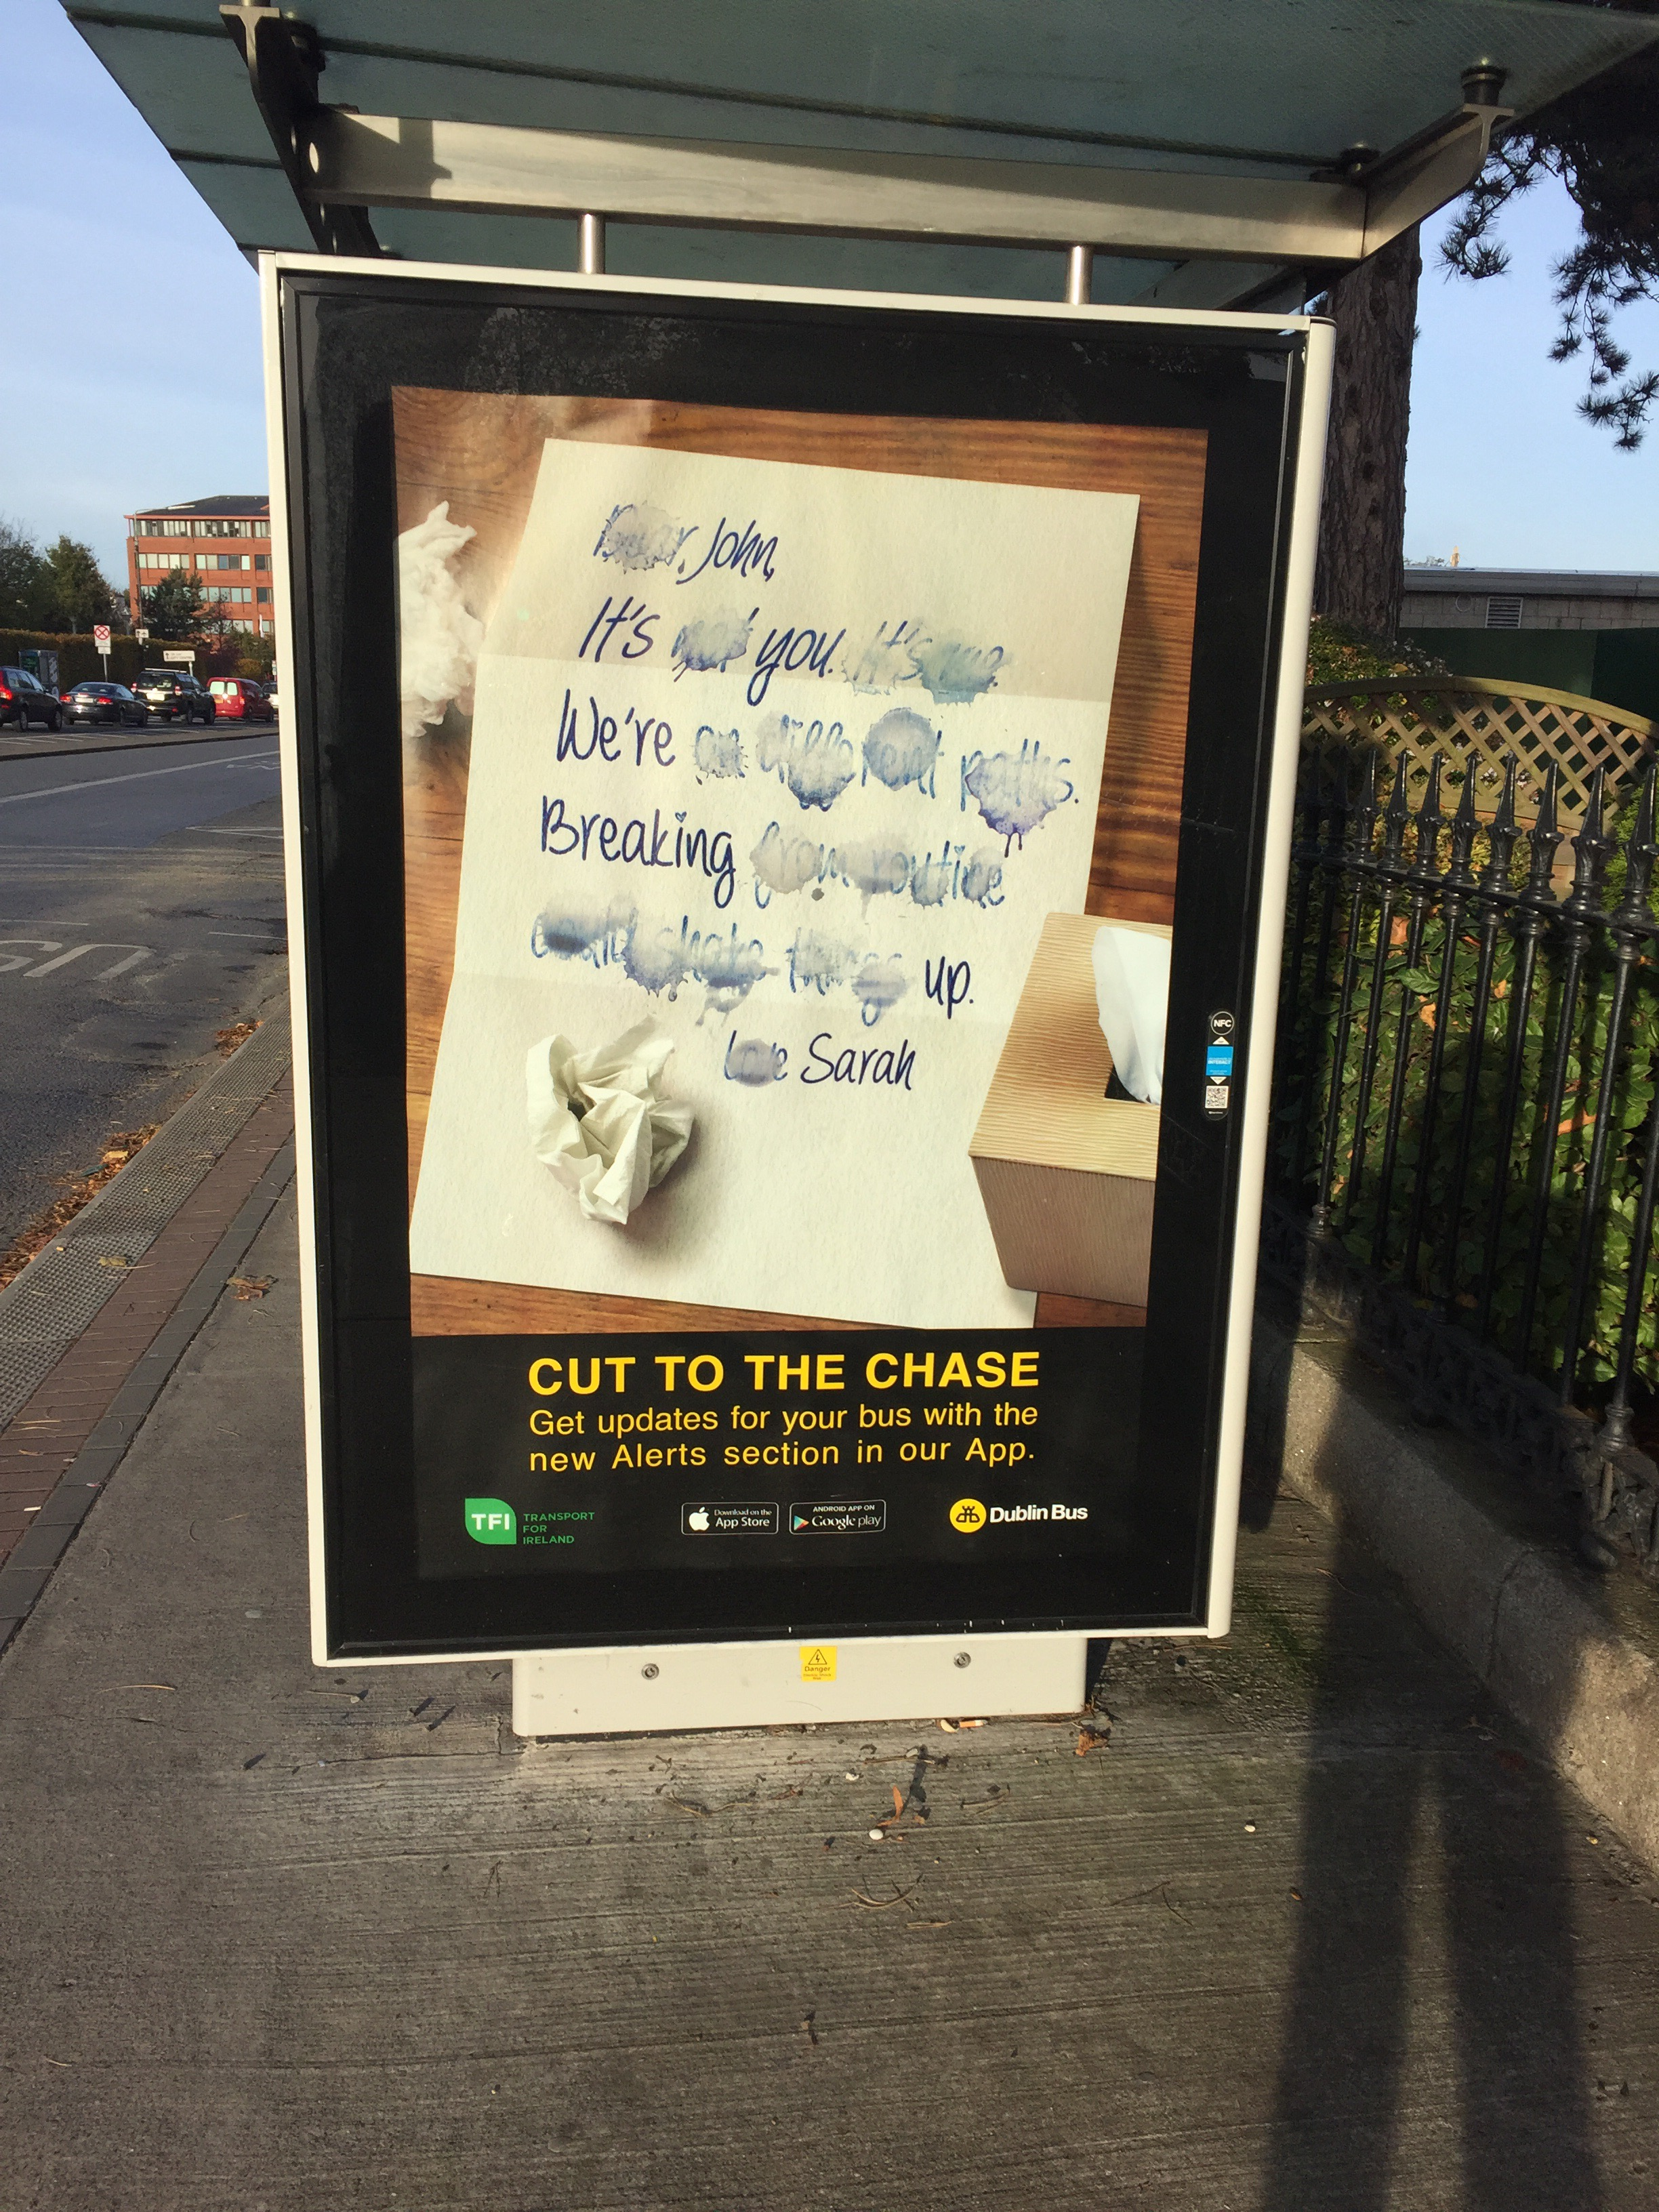 Dublin Bus – cut to the chase